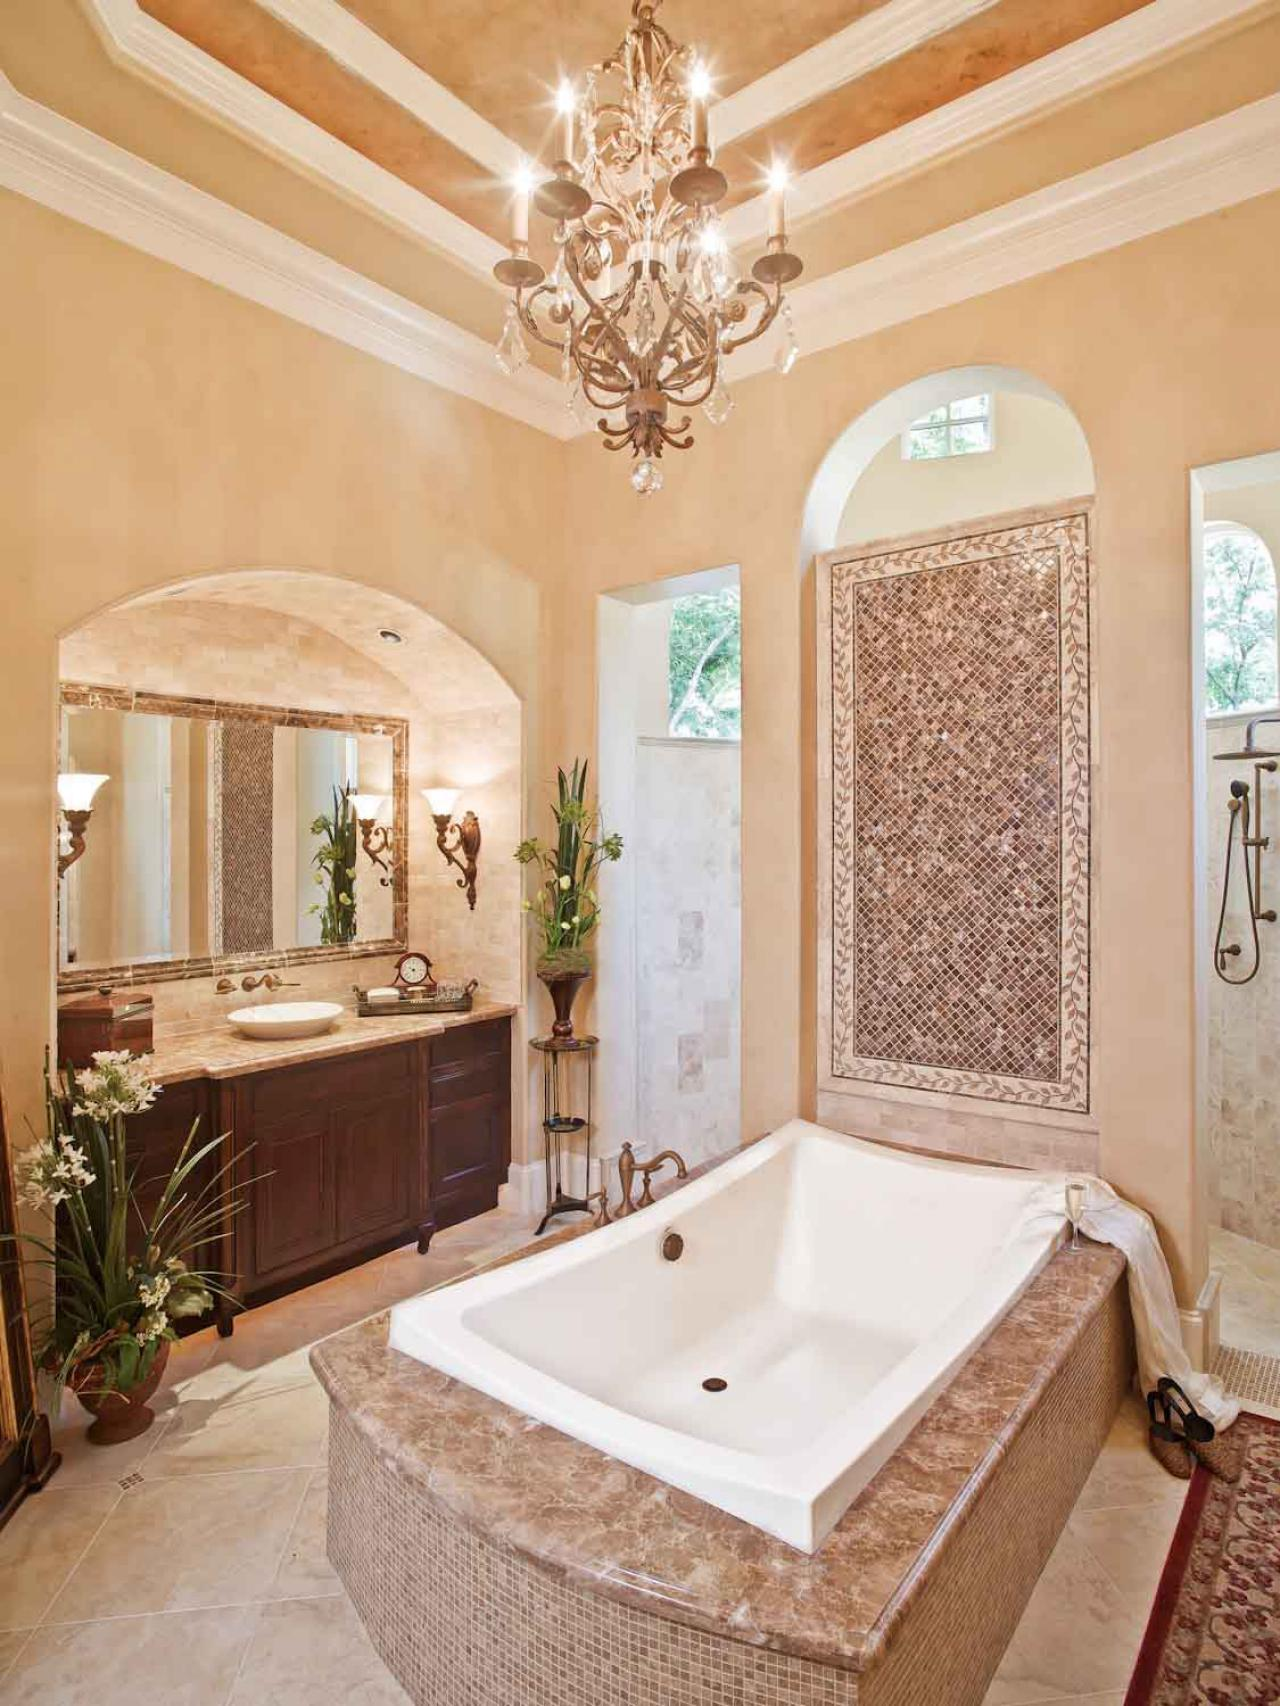 20 luxurious bathrooms with elegant chandelier lighting for Small romantic bathroom ideas